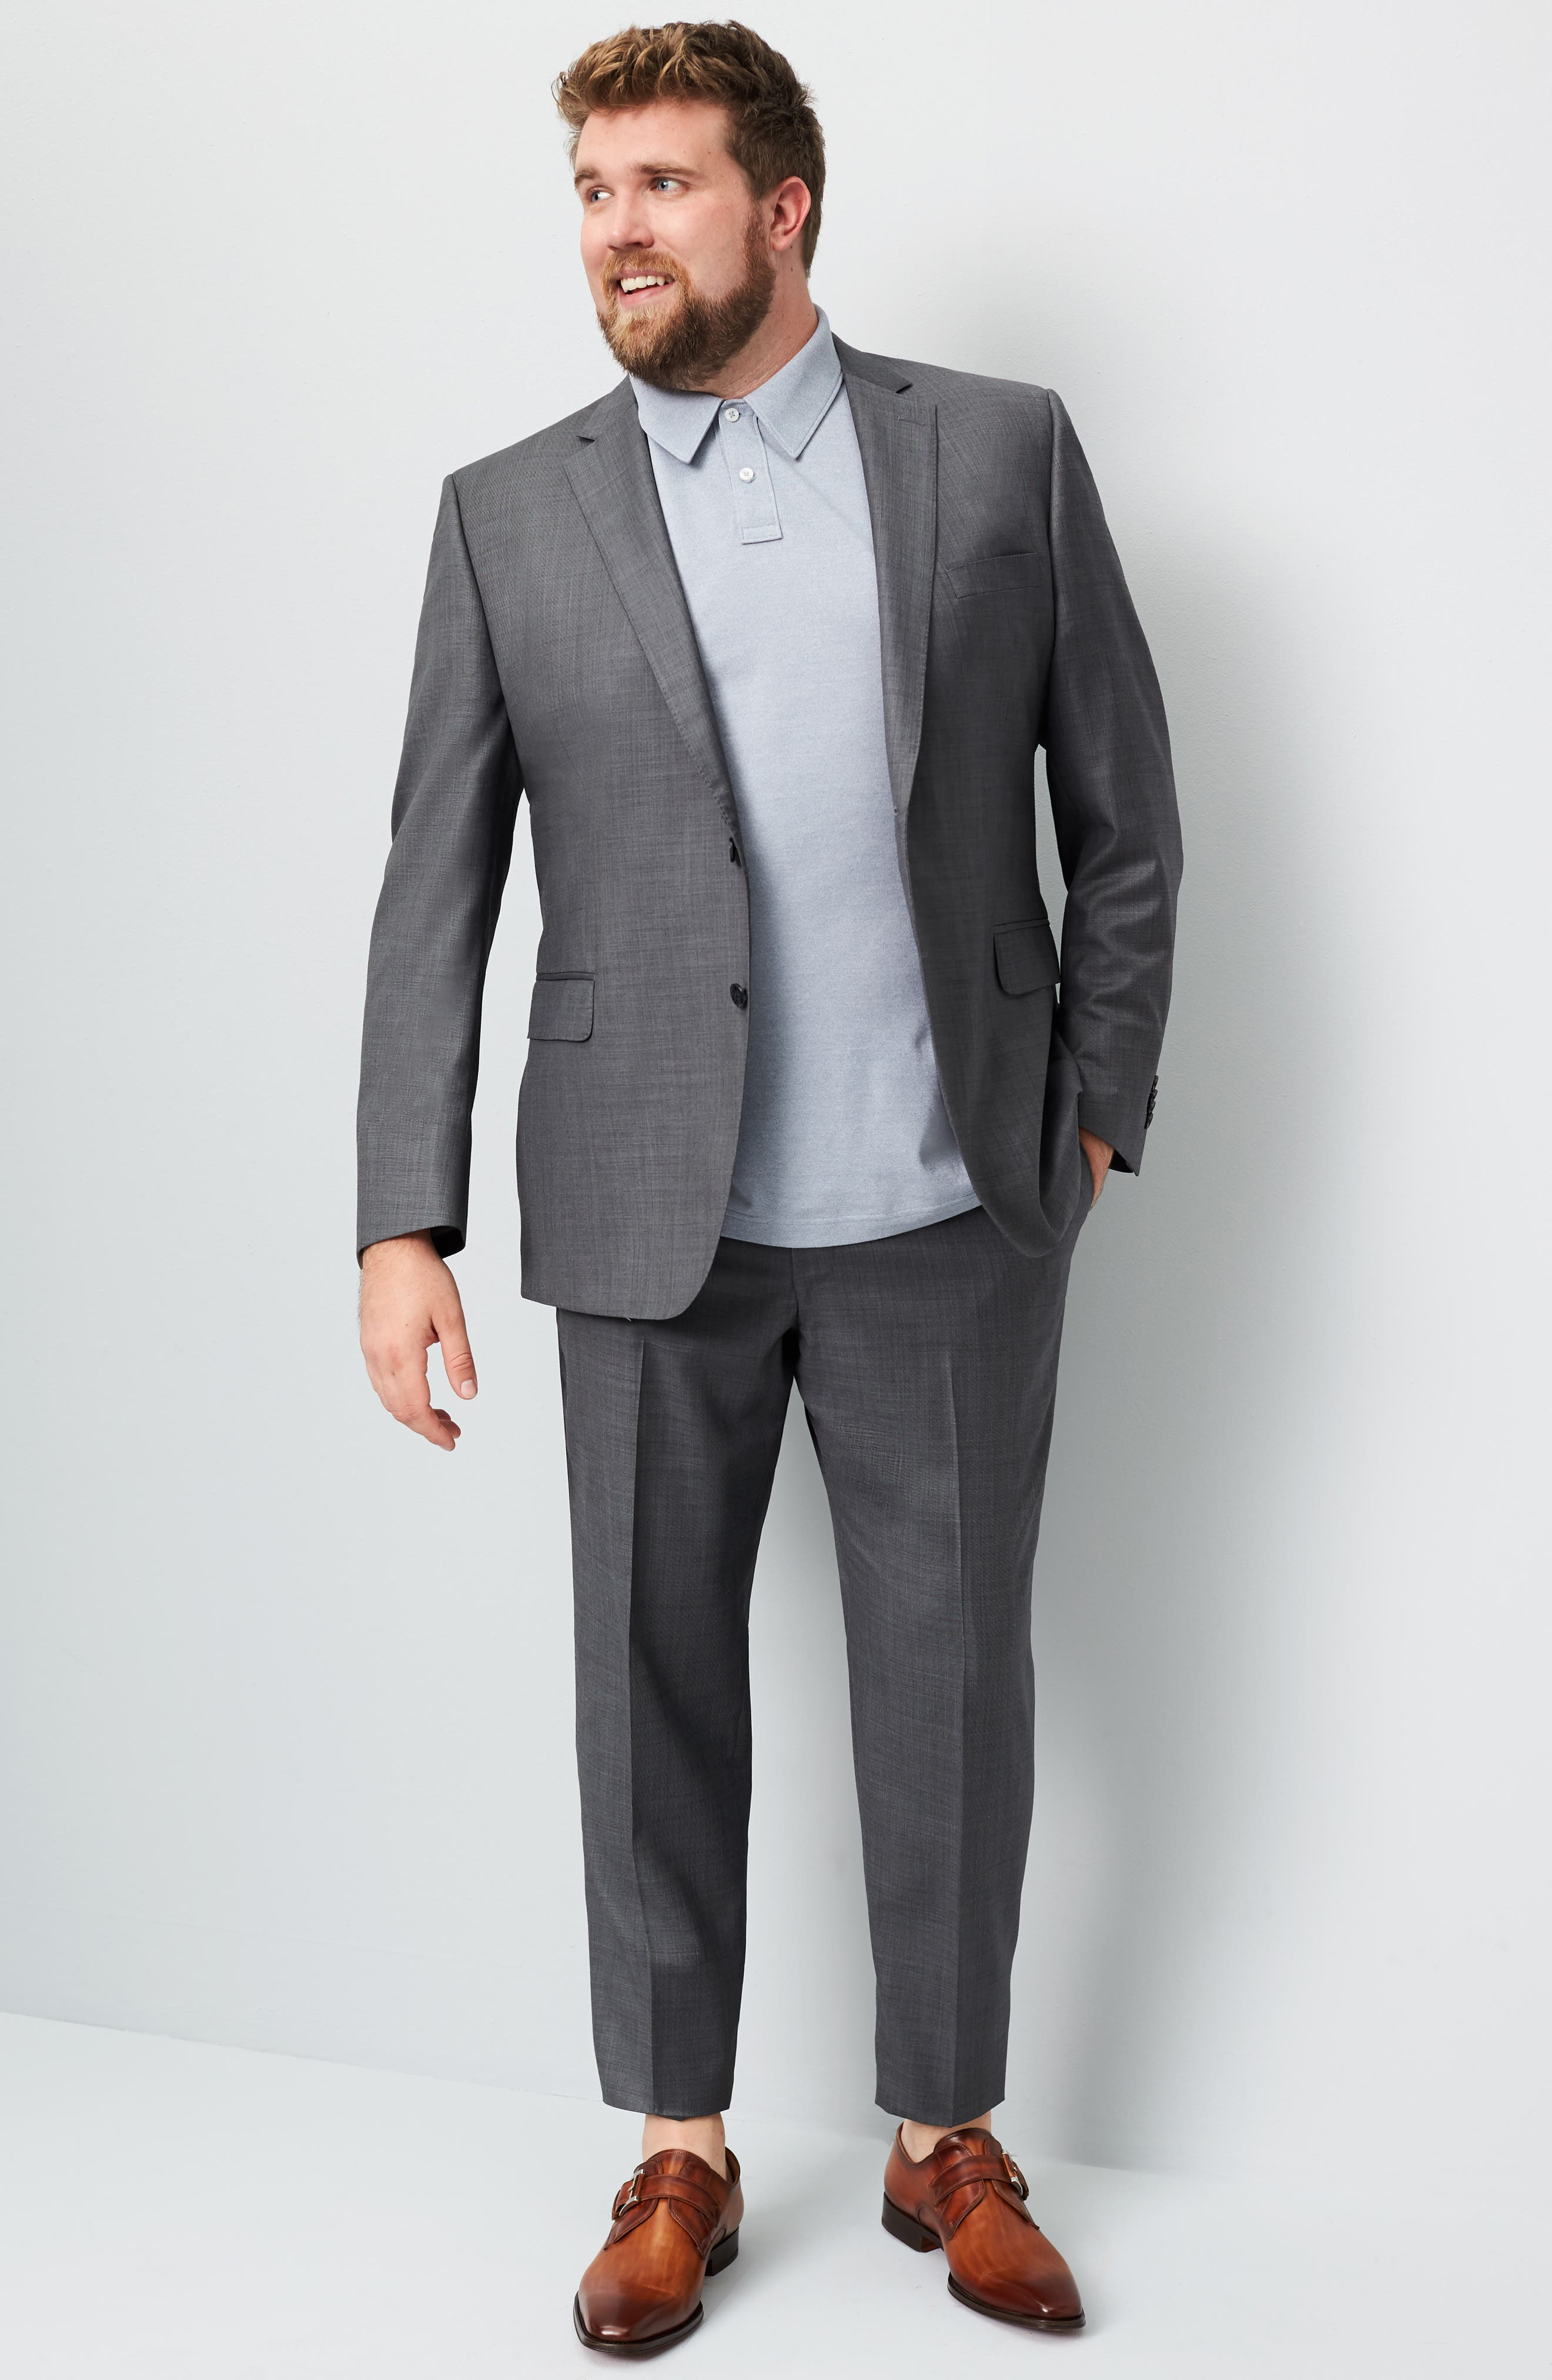 Classic Fit Solid Wool Suit,                             Alternate thumbnail 10, color,                             CHARCOAL